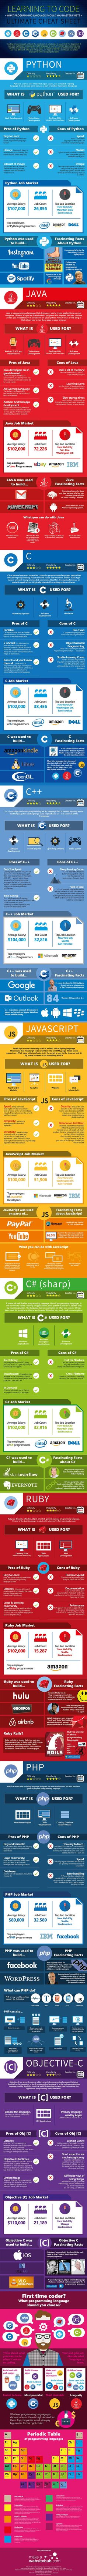 Should You Learn Python, C, or Ruby to Be a Top Coder? (Infographic) See which coding language you should learn first.